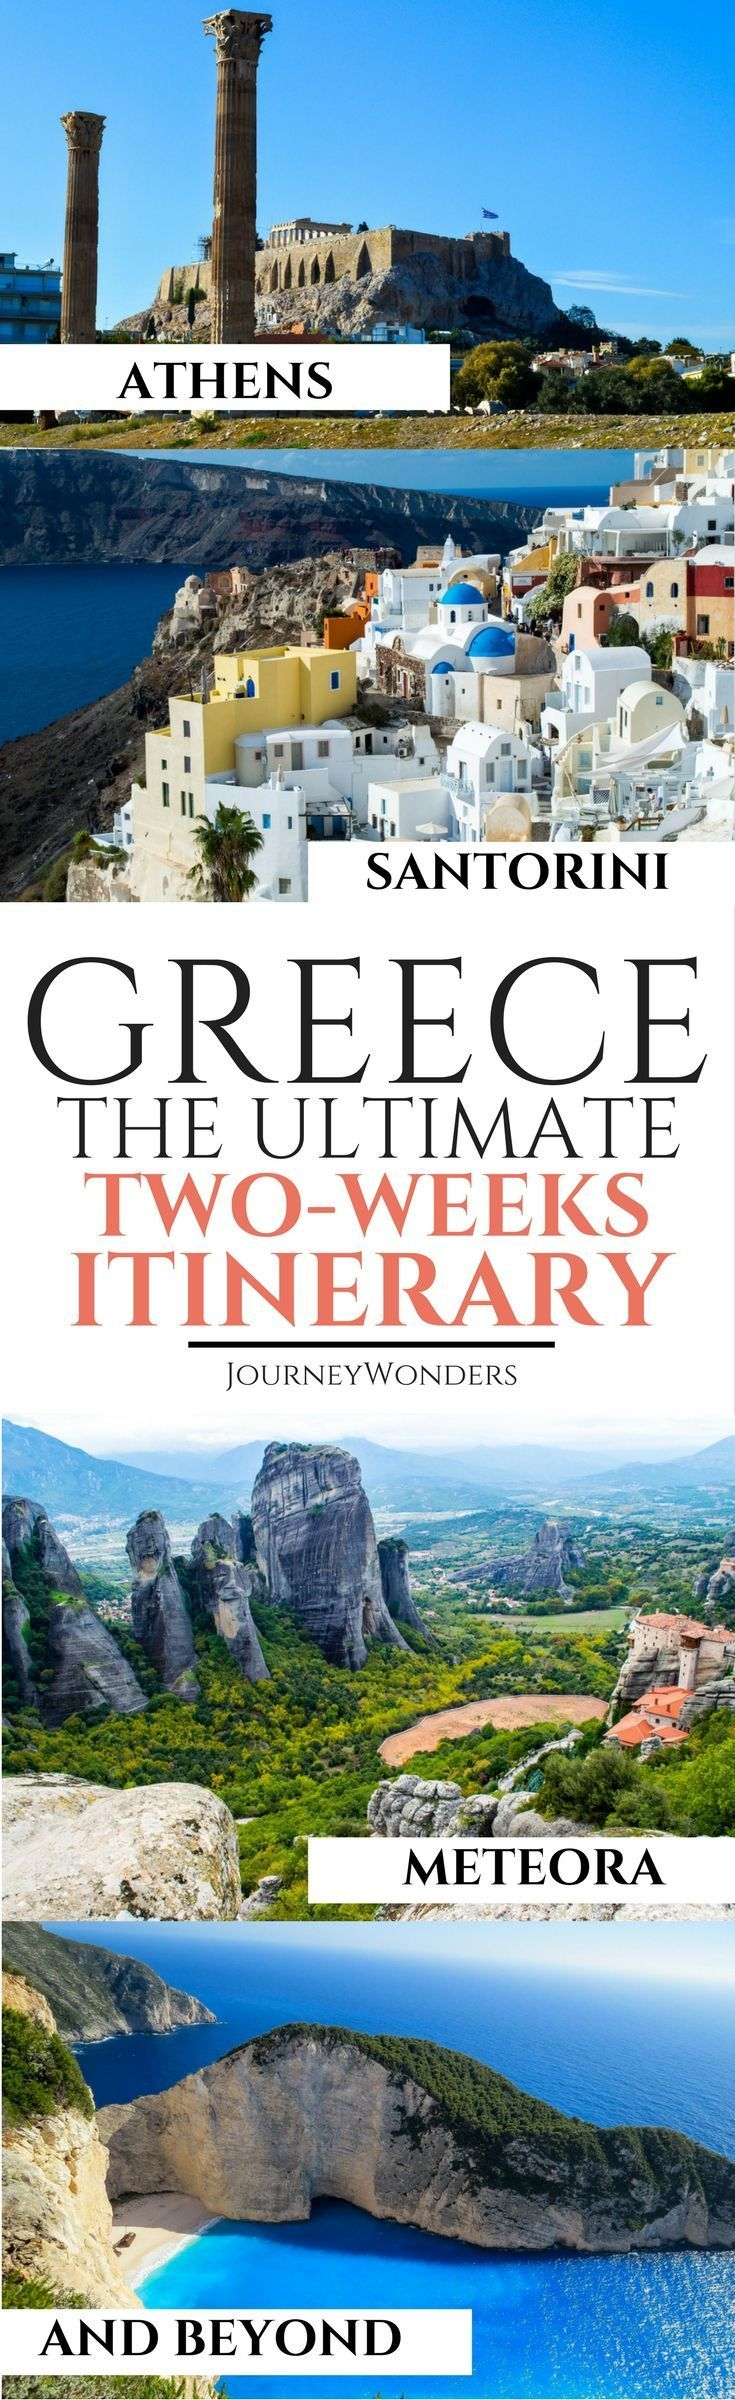 Greece Travel Inspiration - Planning a trip to Greece but don't know where to start? Check out this Two Week Greece Itinerary and enjoy the wonders of this awesome country! Greece Itinerary | Things to do in Greece | Athens Greece| Meteora Greece | Santorini Greece #Athens #Greece #Meteora #Santorini via @journeywonders